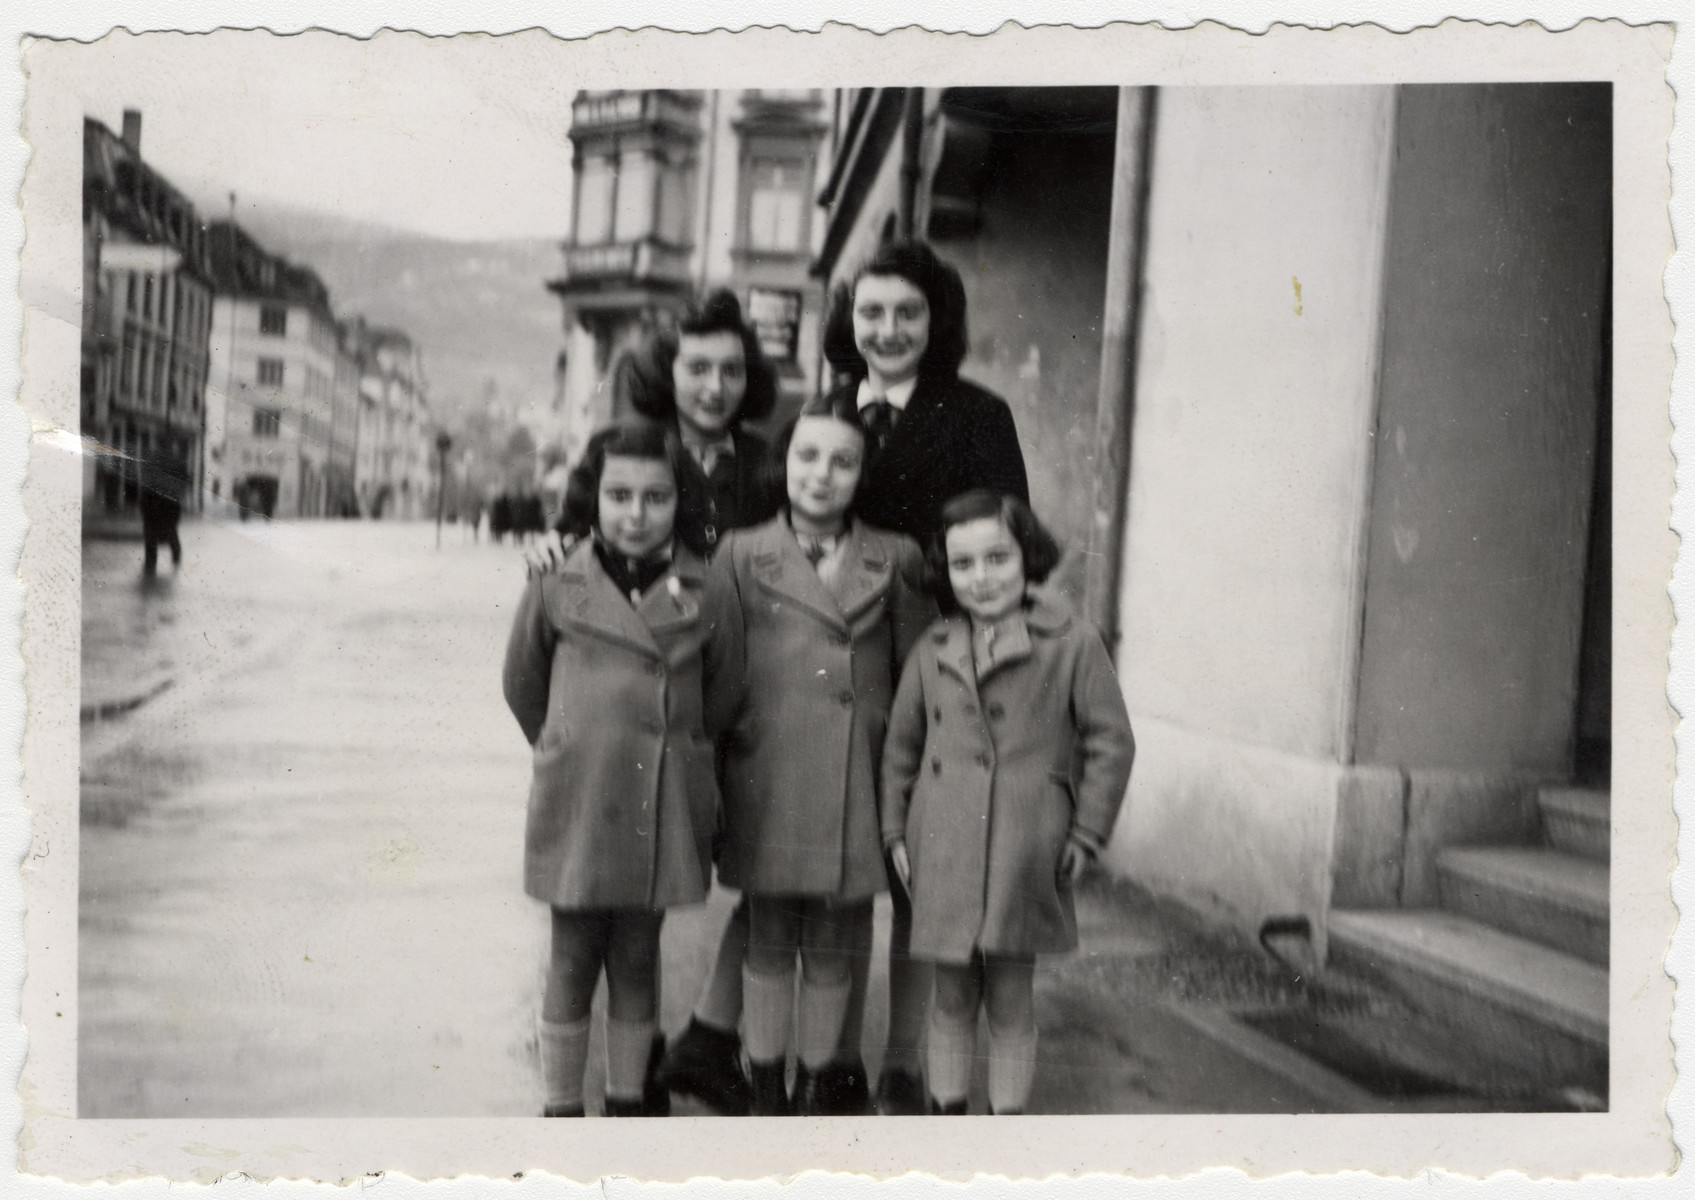 The five daughters of the Jewish lawyer and rescuer Matthieu Muller pose on a street [possibly in Paris].  Pictured left to right, bottom row: Edith (later Bloch), Judith (later Schwartzman), Noemi (later Schoenthal).  Top row: Miriam Muller (later Gross) and Florine Muller (later Klein).